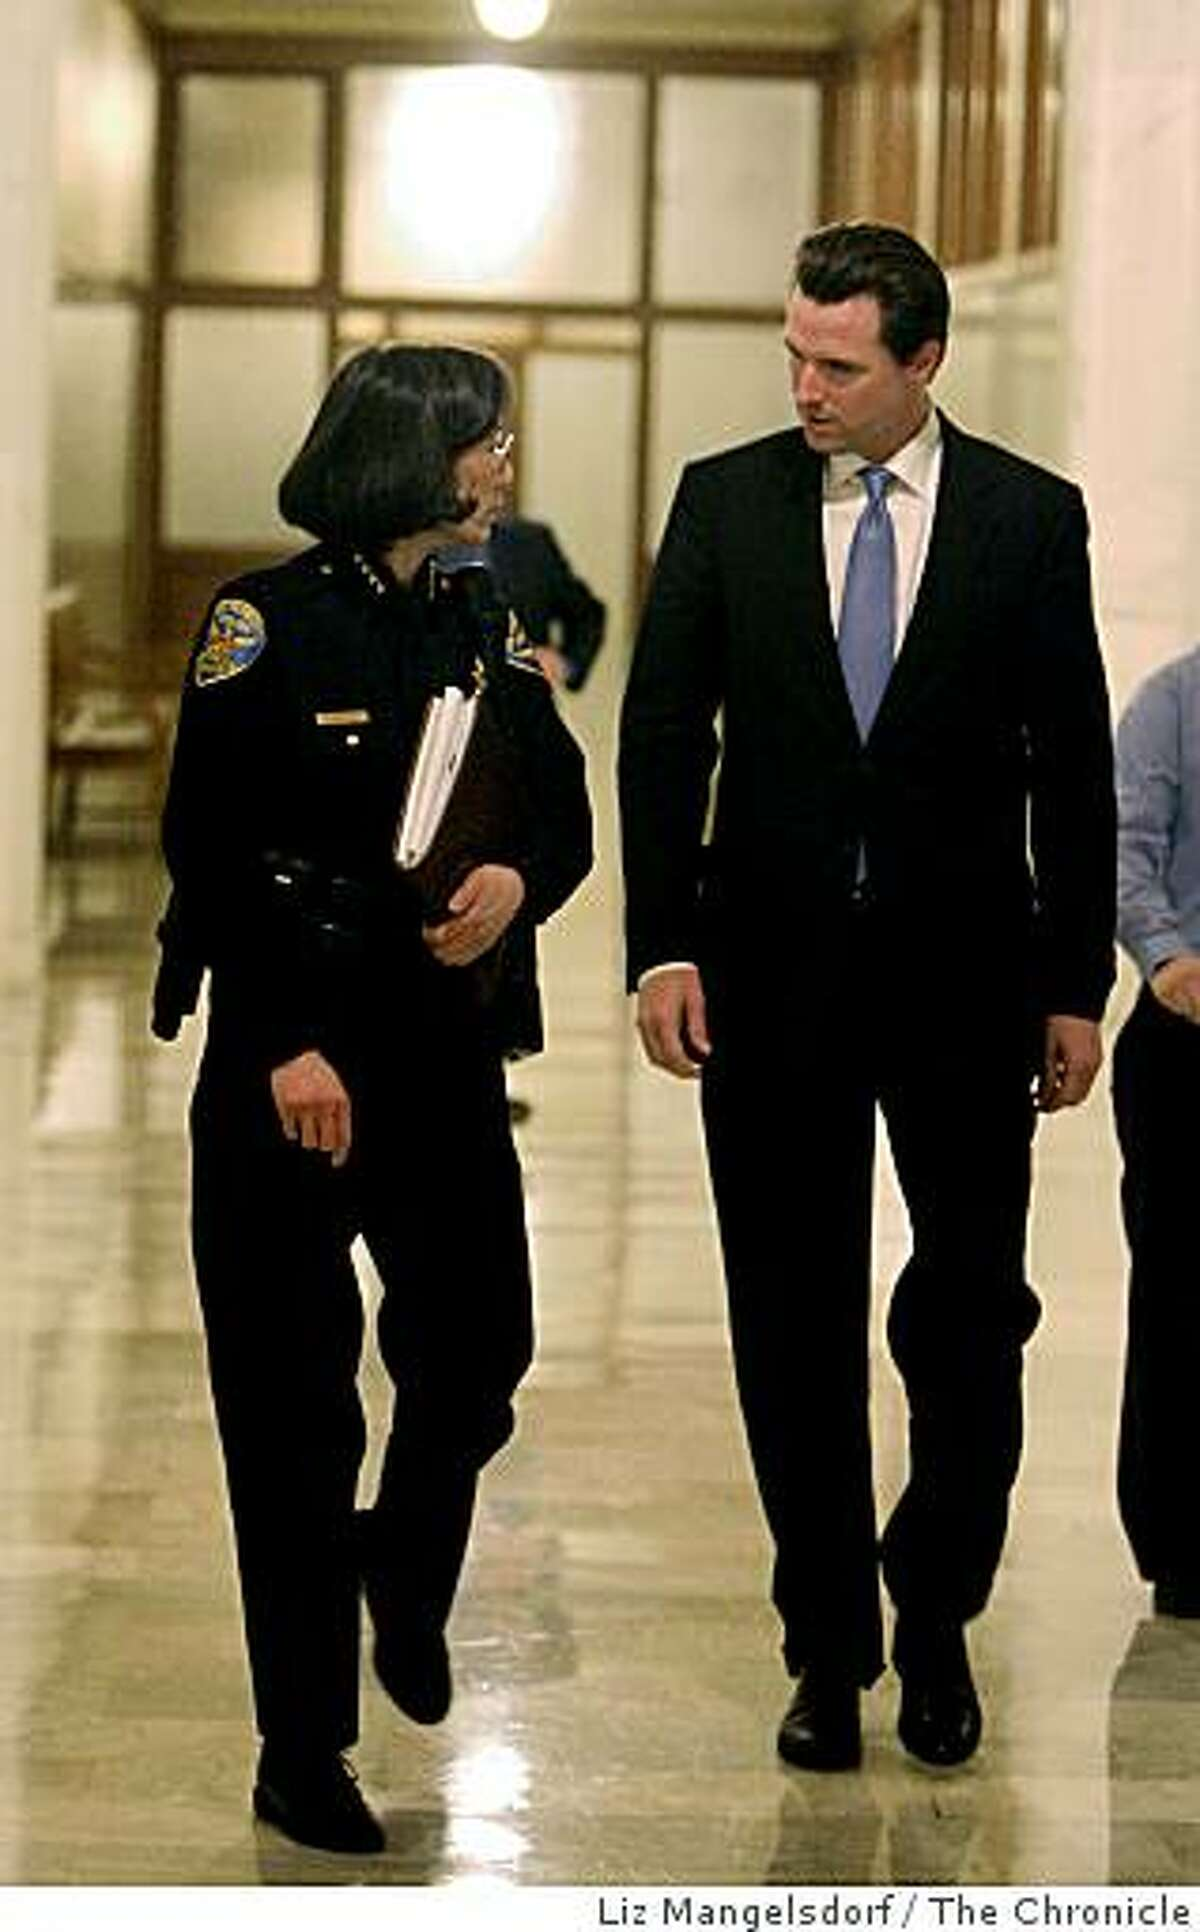 Mayor Gavin Newsom leaves the SF Stat meeting and walks to his office at San Francisco City Hall with Police Chief Heather Fong on Feb. 5, 2007. Earlier, Newsom releasing a press release saying he had stopped drinking. SF Stat is a monthly meeting on city statistics.